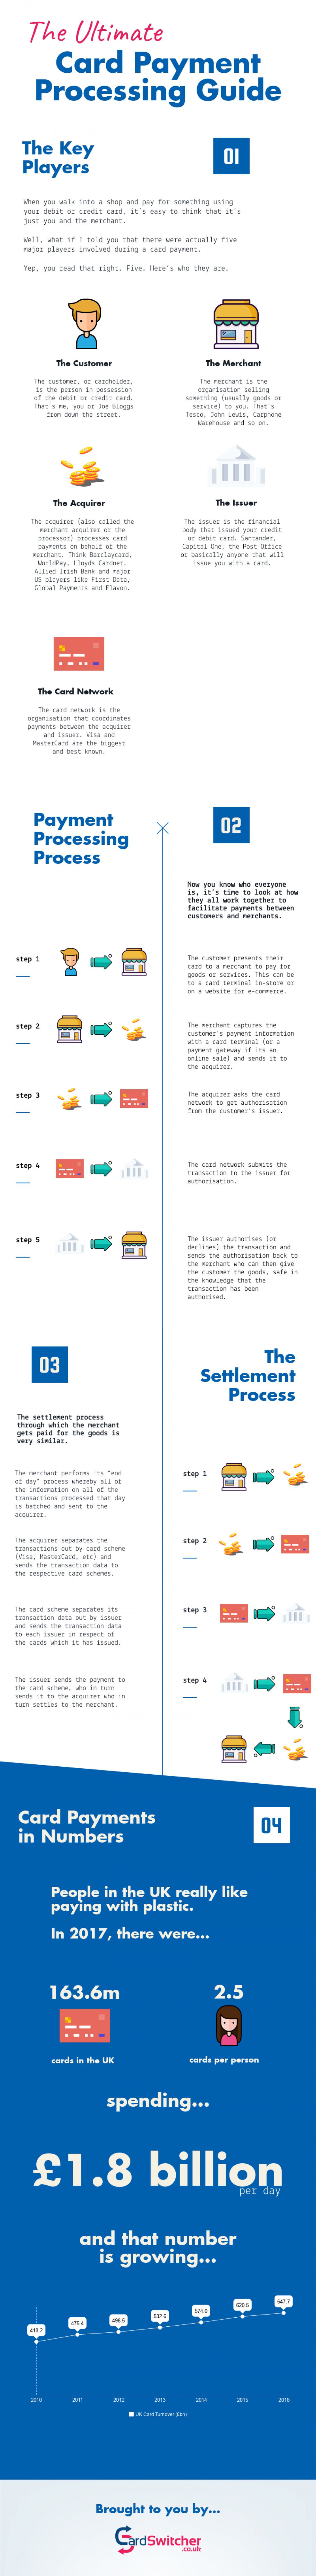 The Ultimate Card Payment Processing Guide Infographic